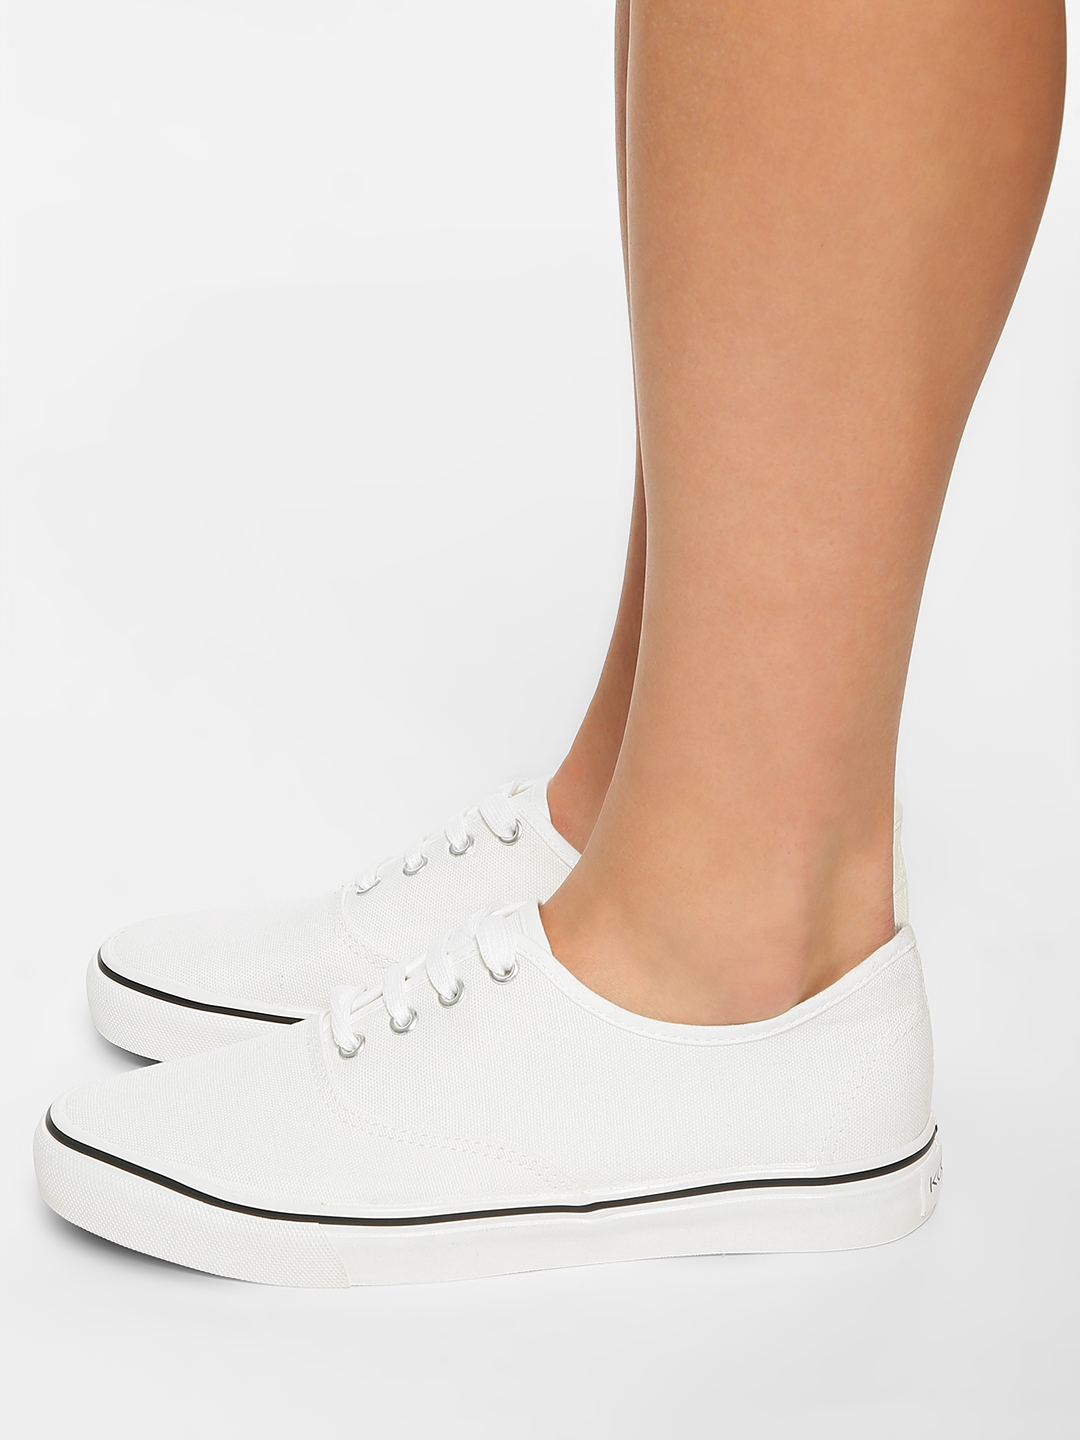 KOOVS White Canvas Low Top Sneakers 1